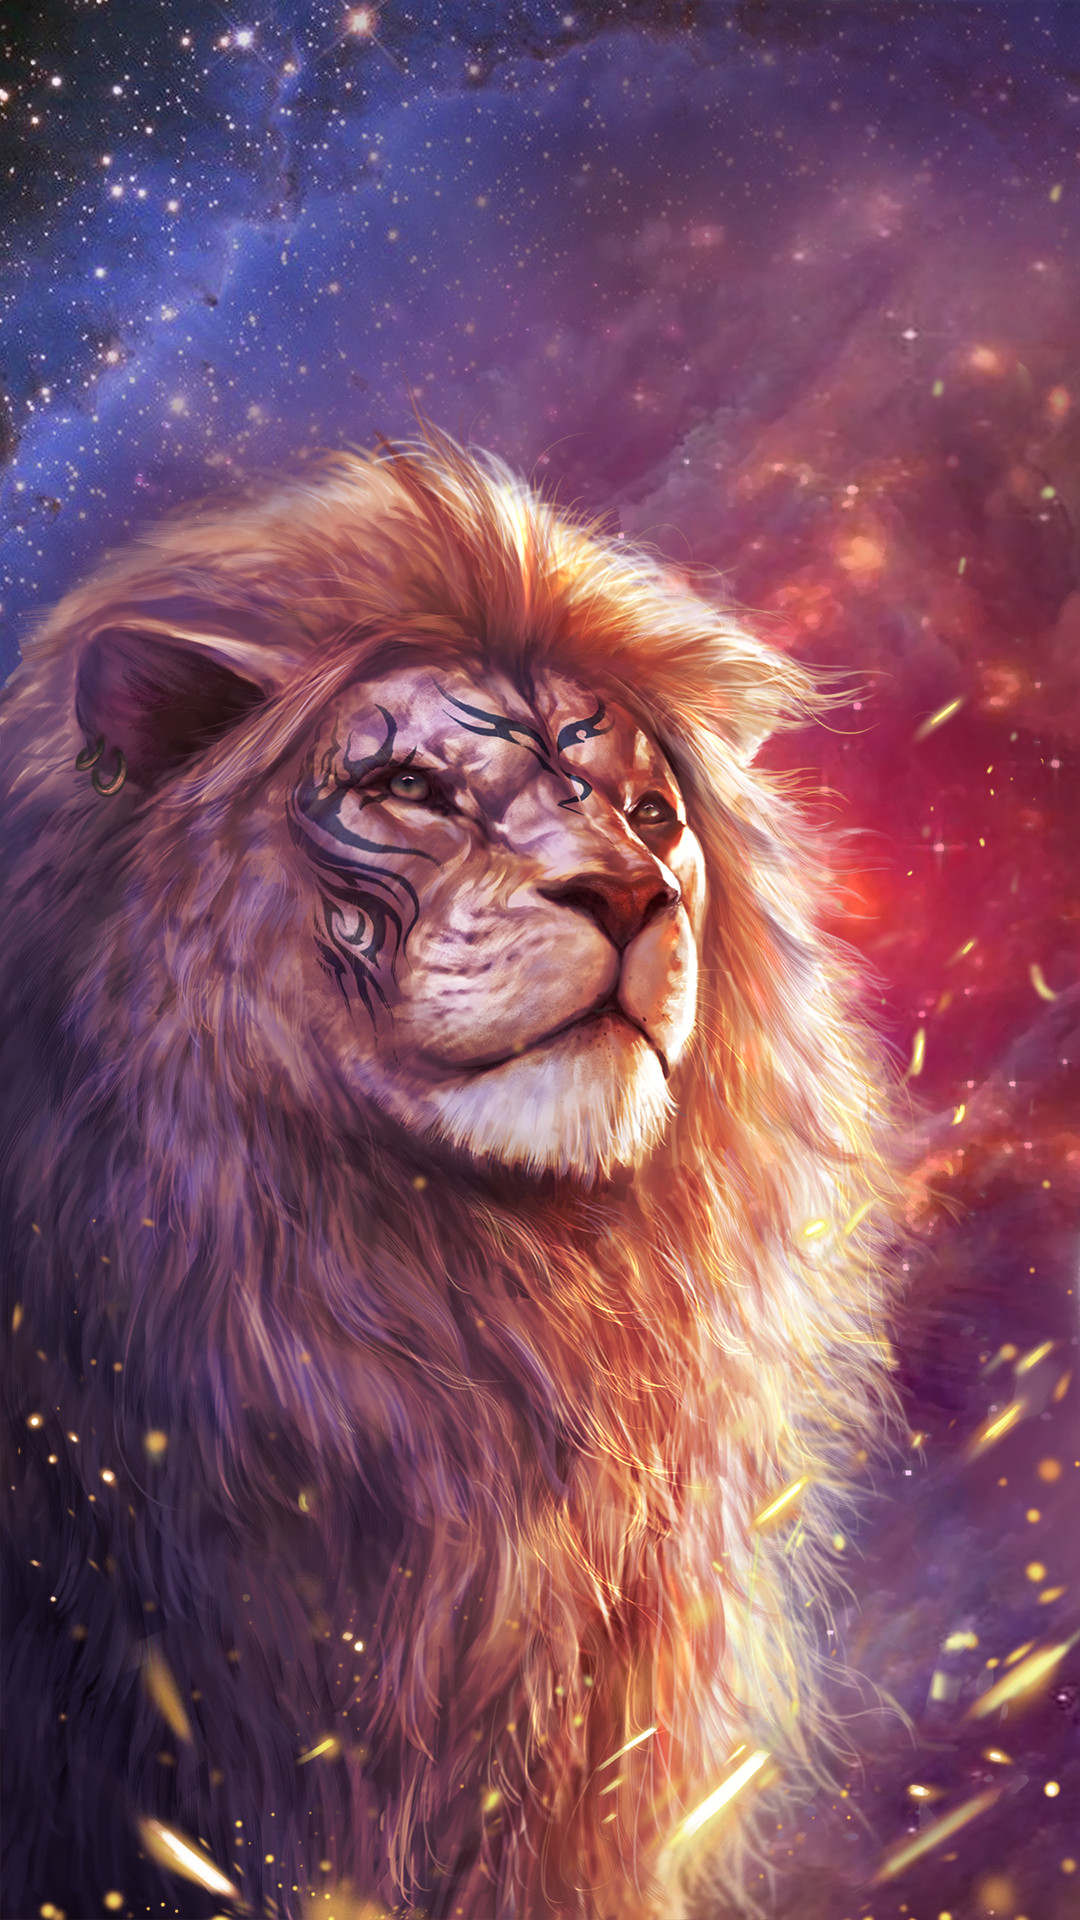 Res: 1080x1920, Cool lion wallpaper with totem tattoo!